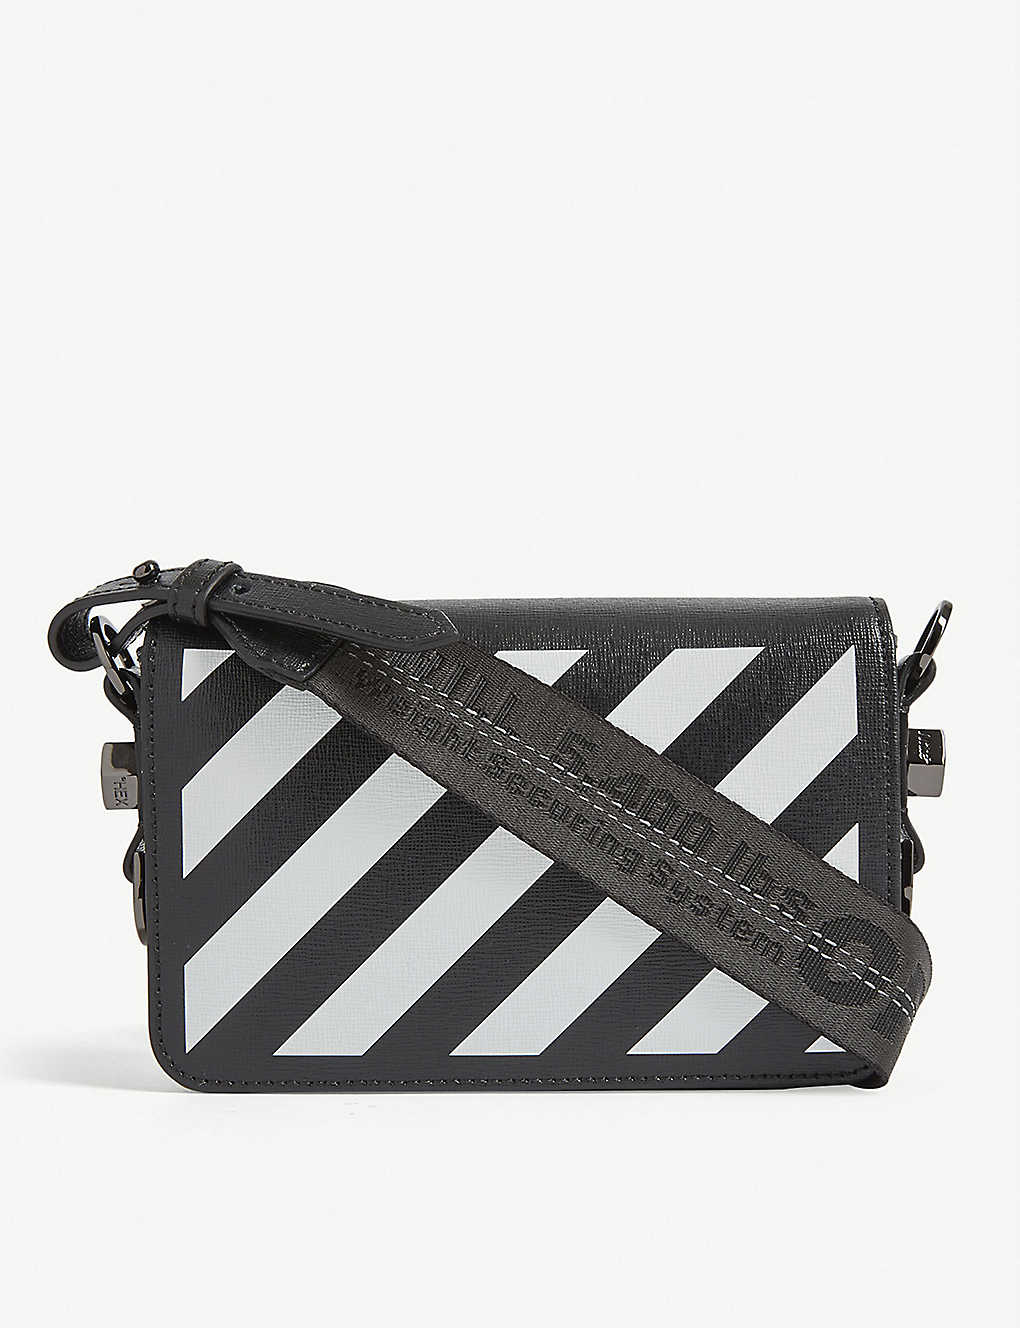 OFF WHITE CO VIRGIL ABLOH Striped mini leather cross body